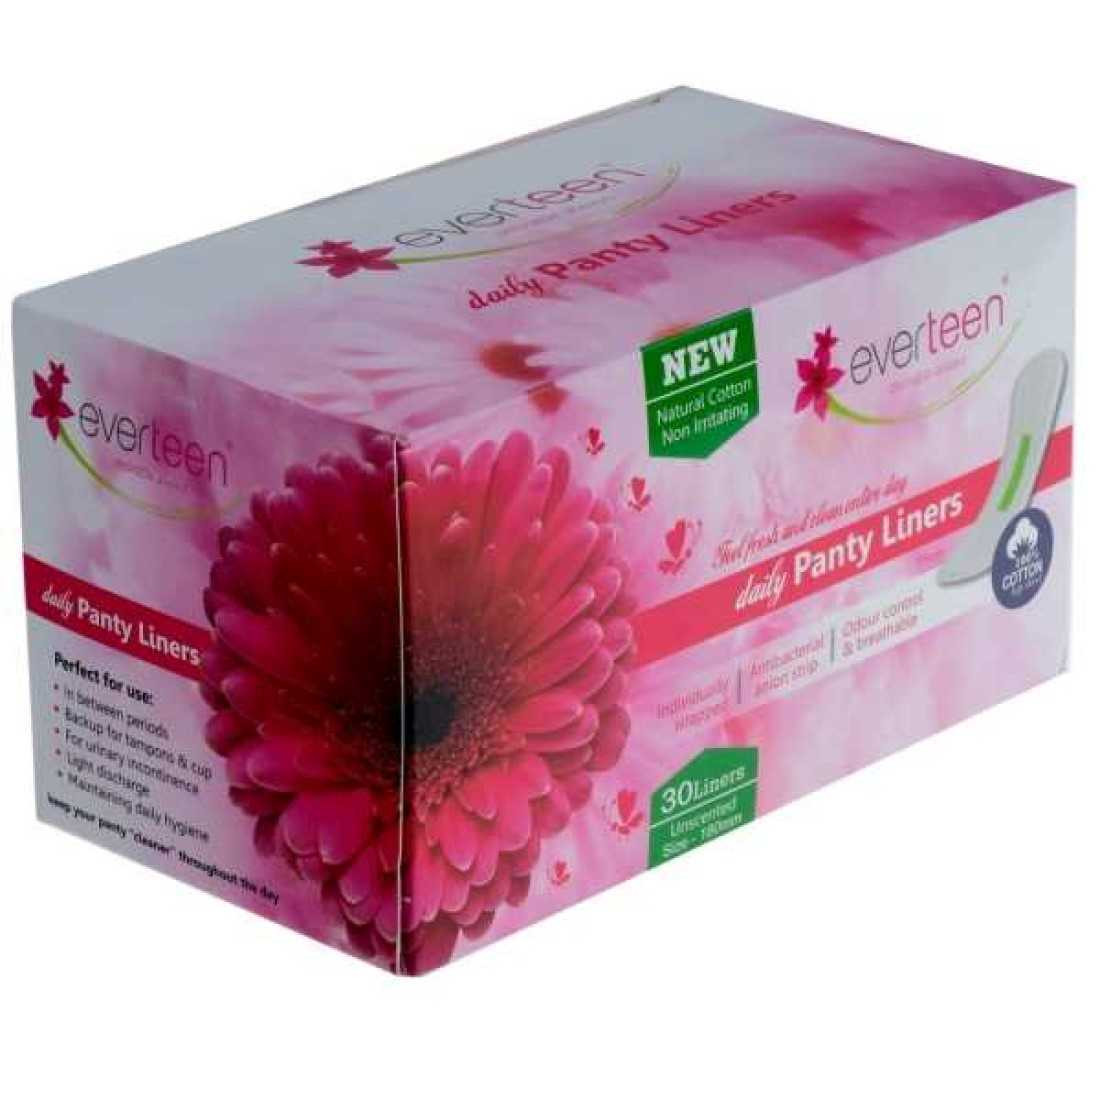 everteen® 100% Natural Cotton Daily Panty Liners for Women - 1 Pack (30pcs)